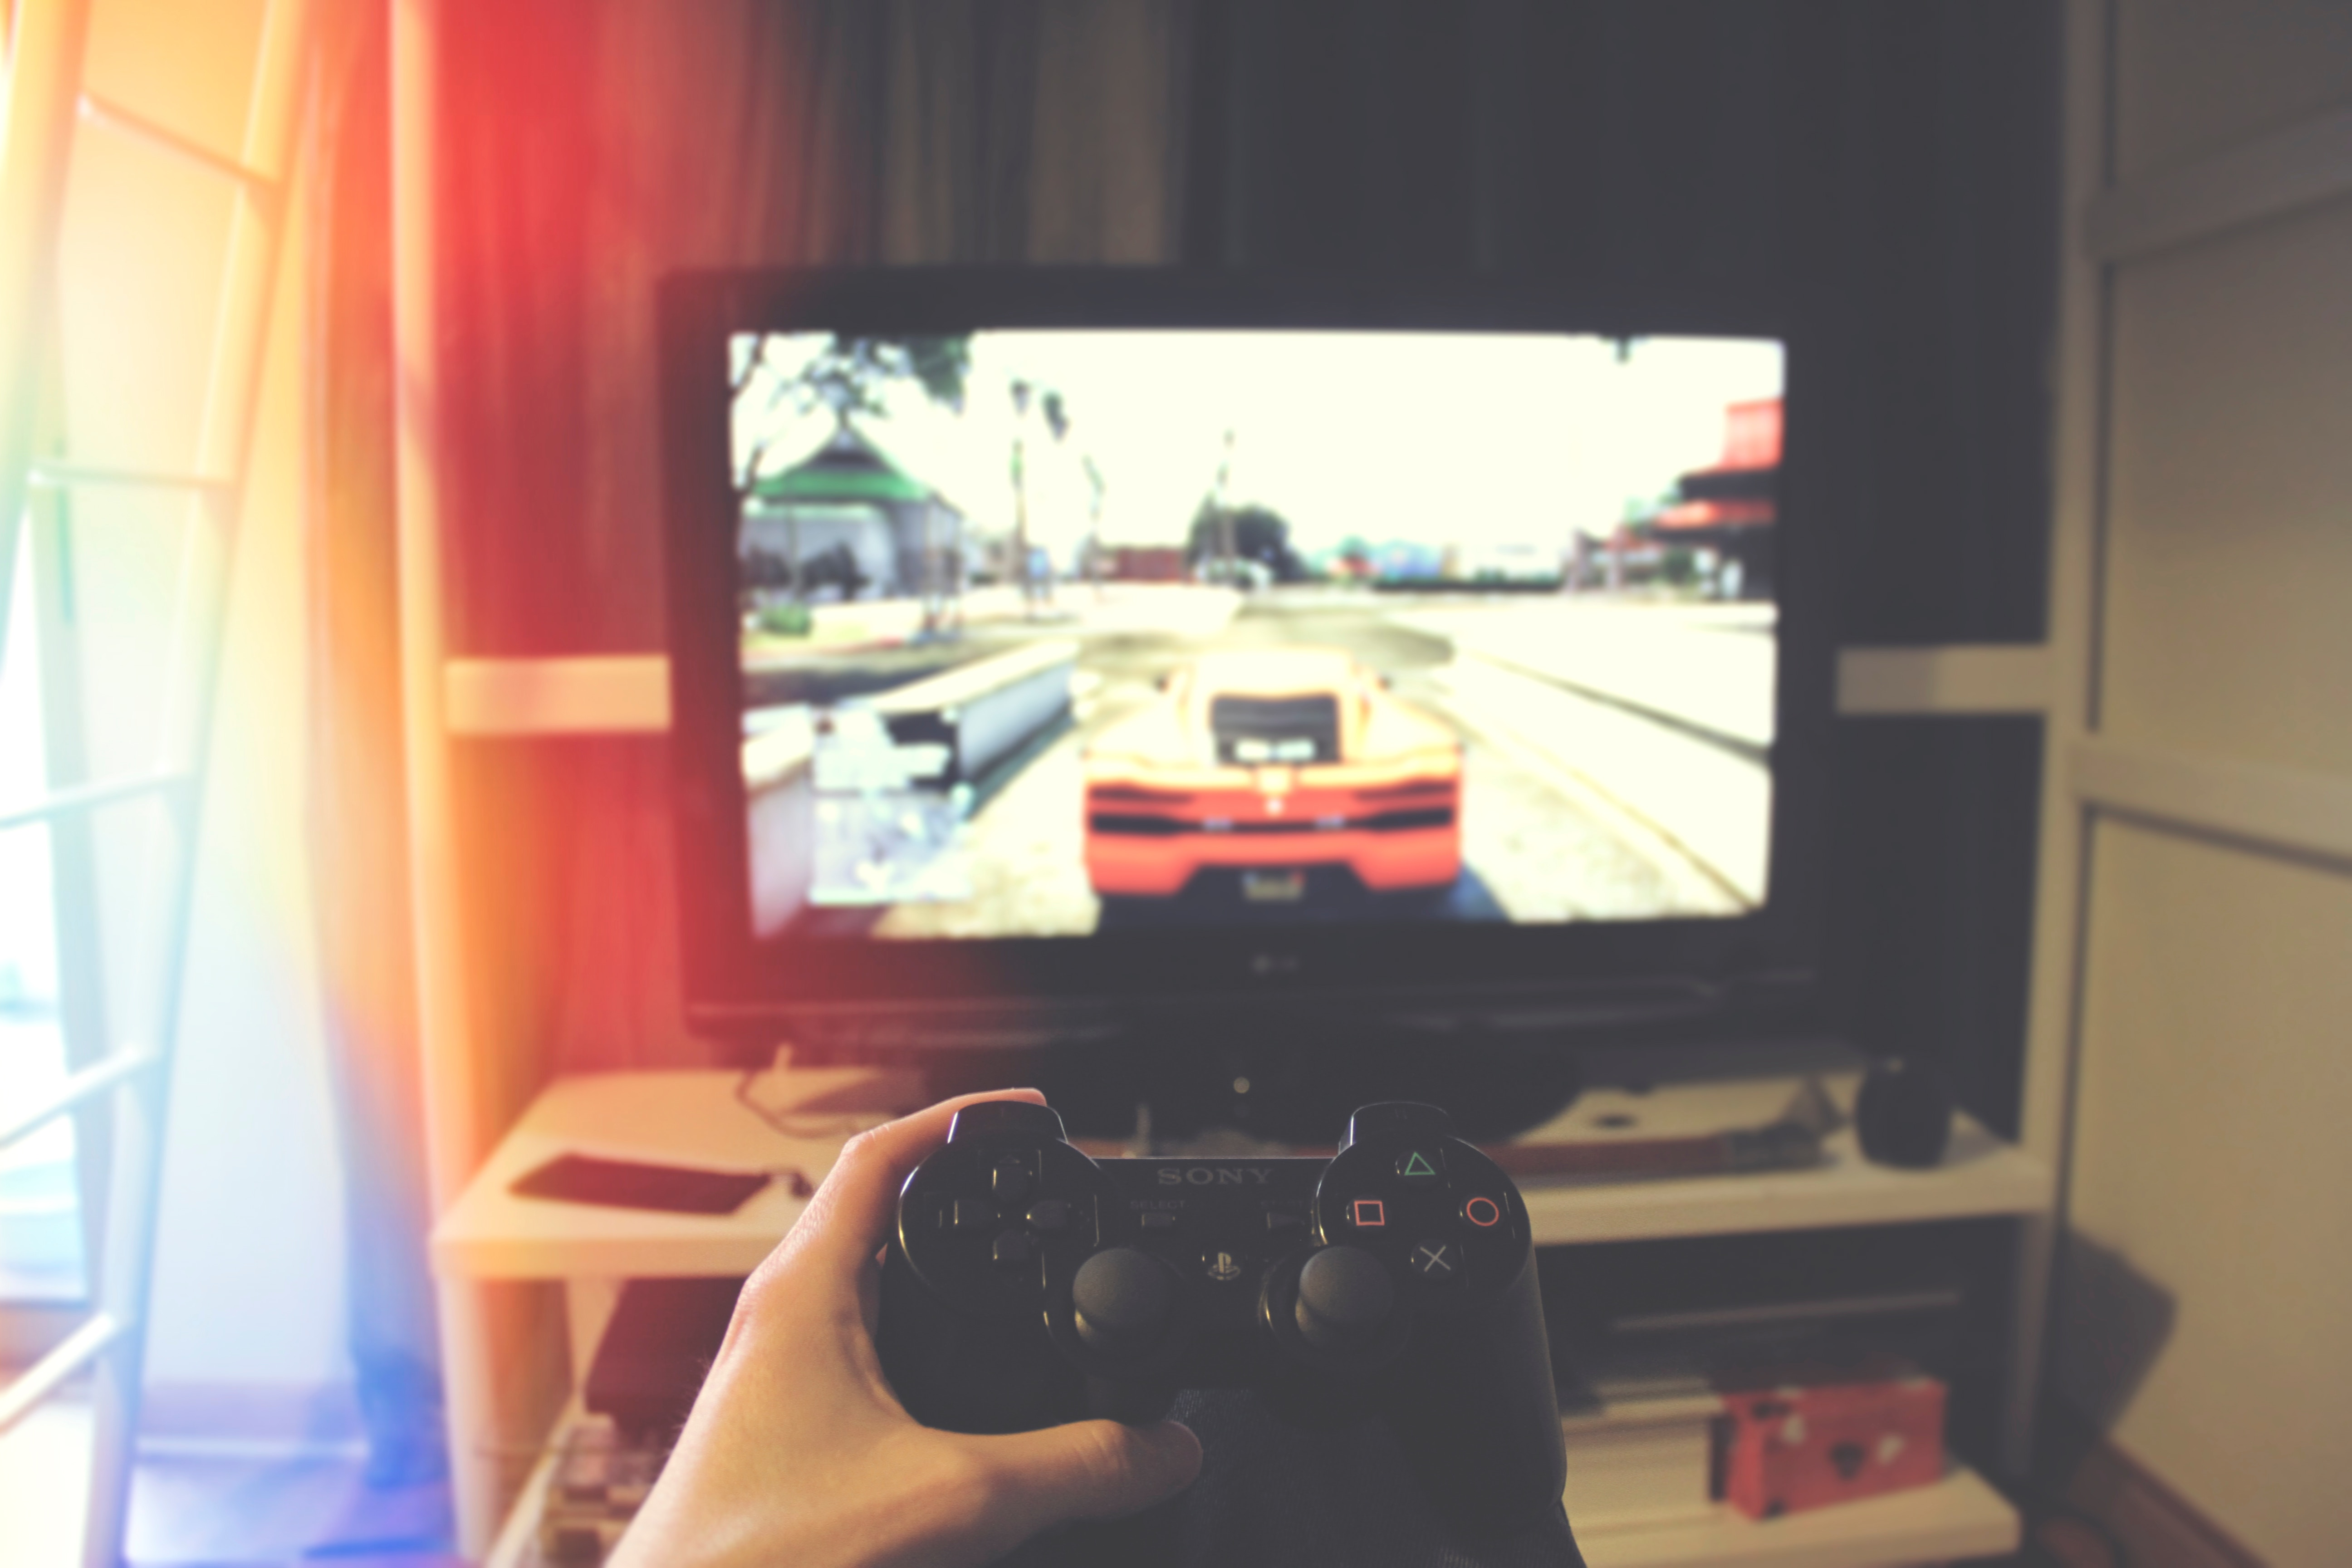 PCs vs. Gaming Consoles, the great debate